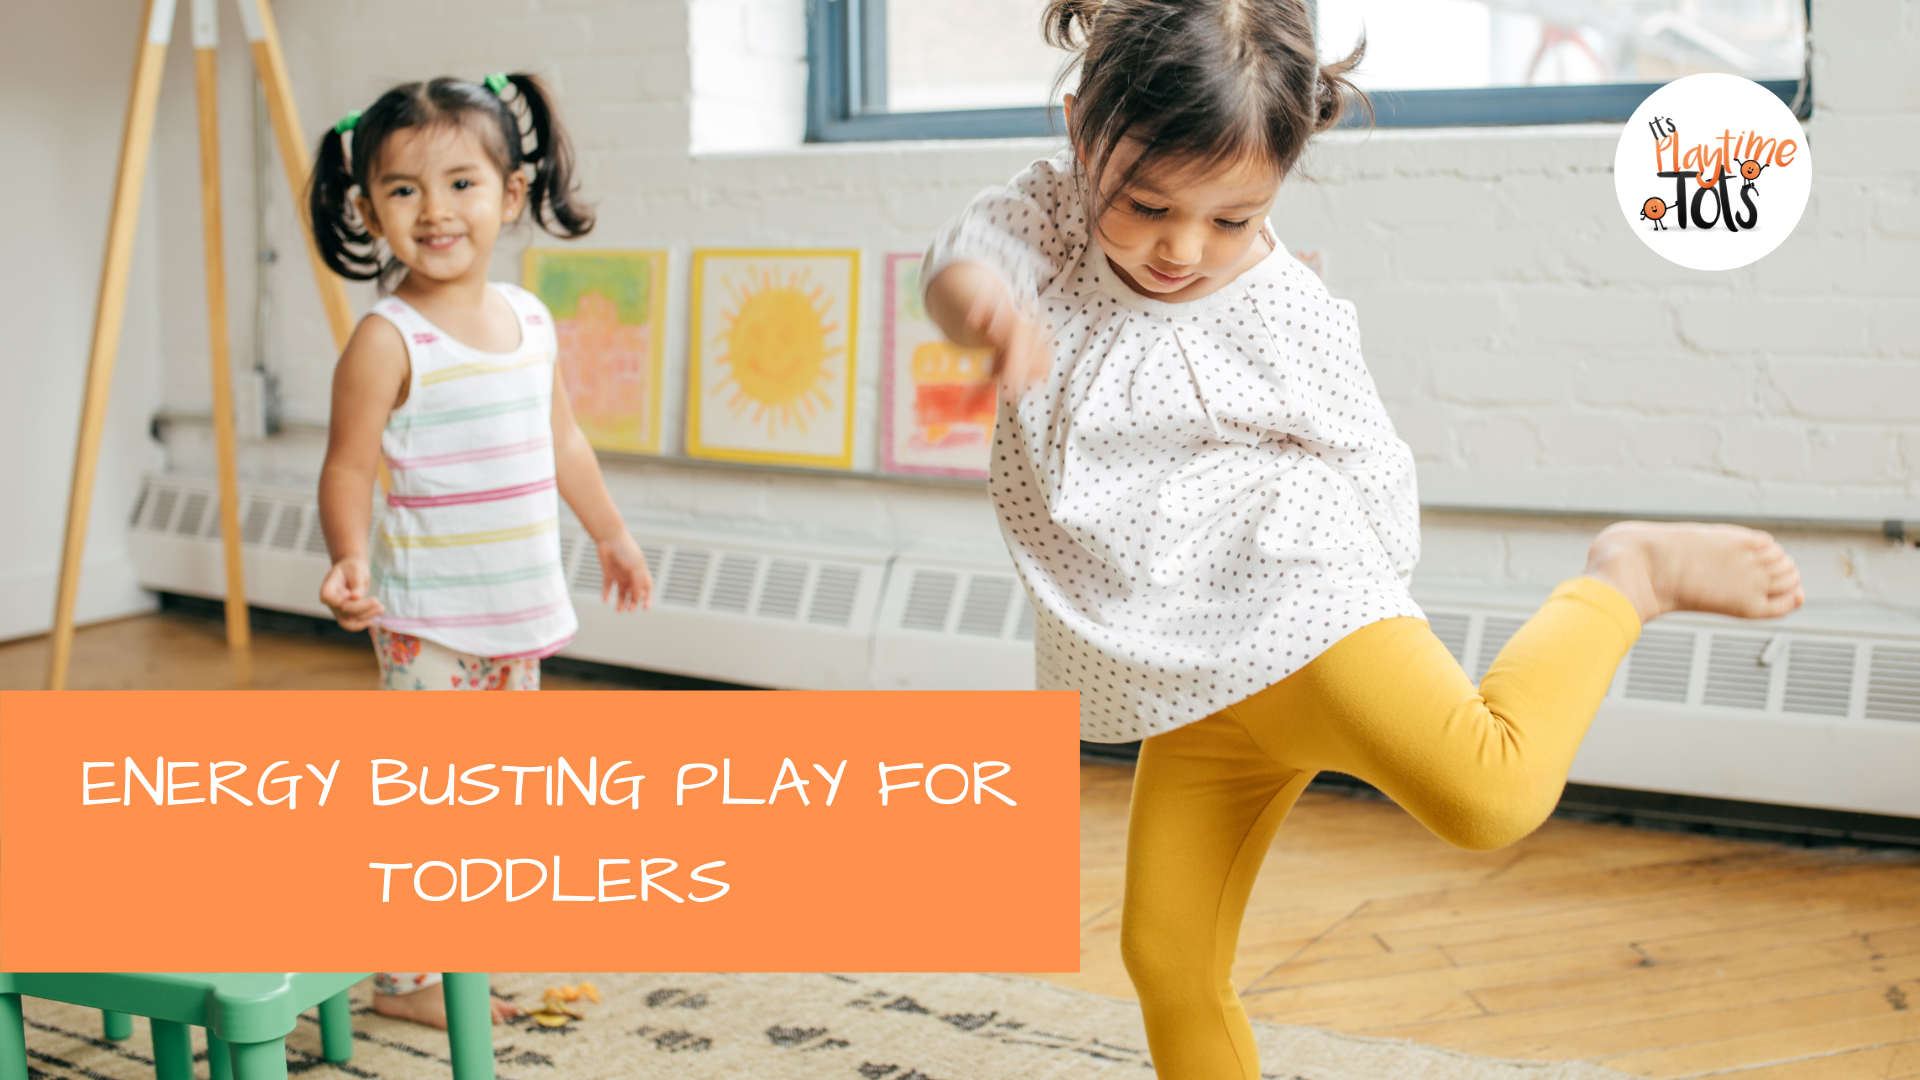 Energy Busting Play For Toddlers